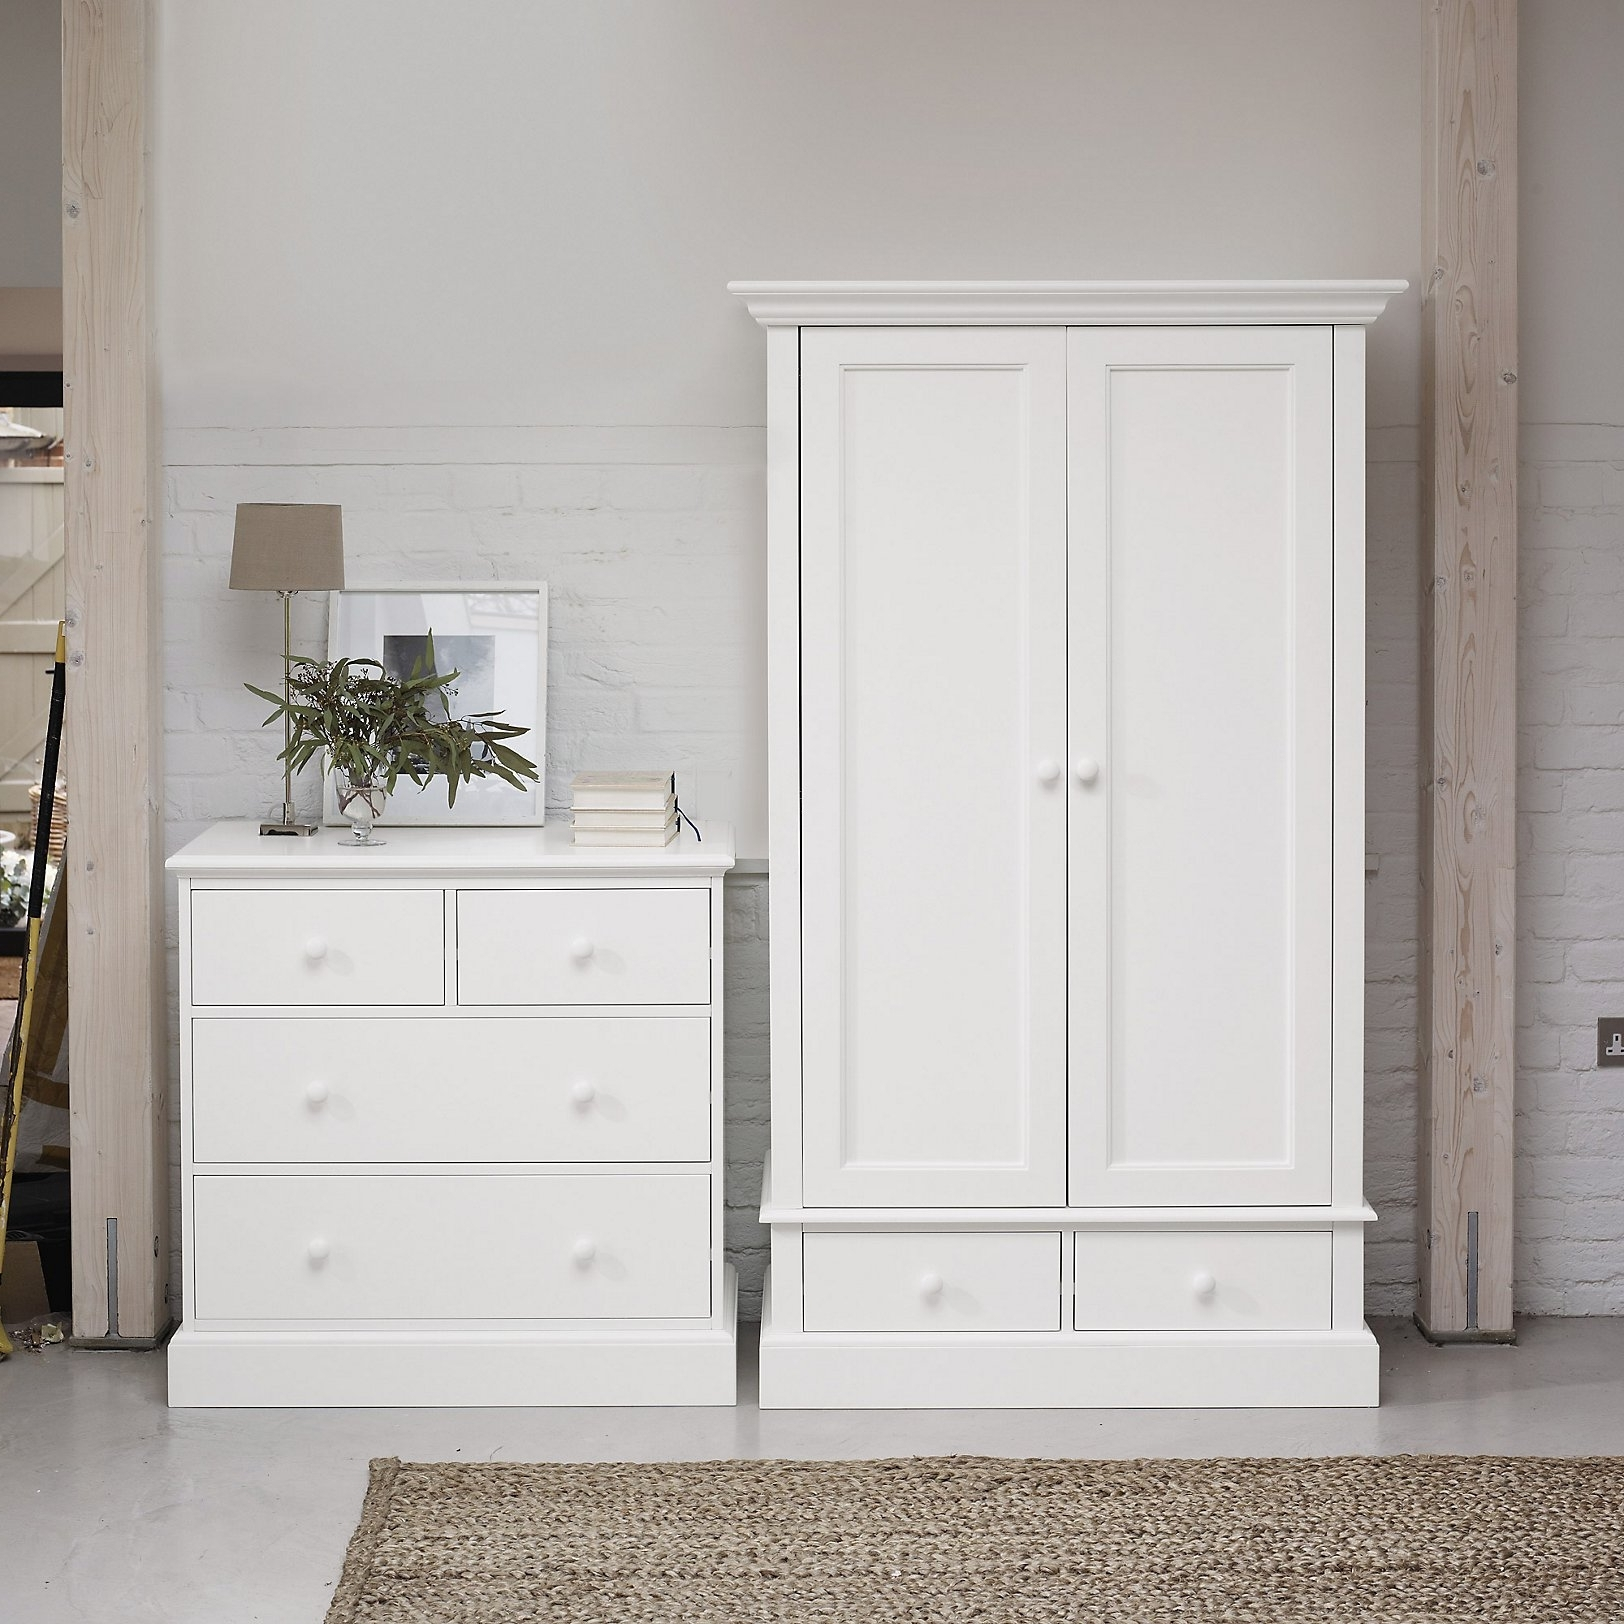 Small Wardrobes For Preferred Classic Small Wardrobe (View 10 of 15)